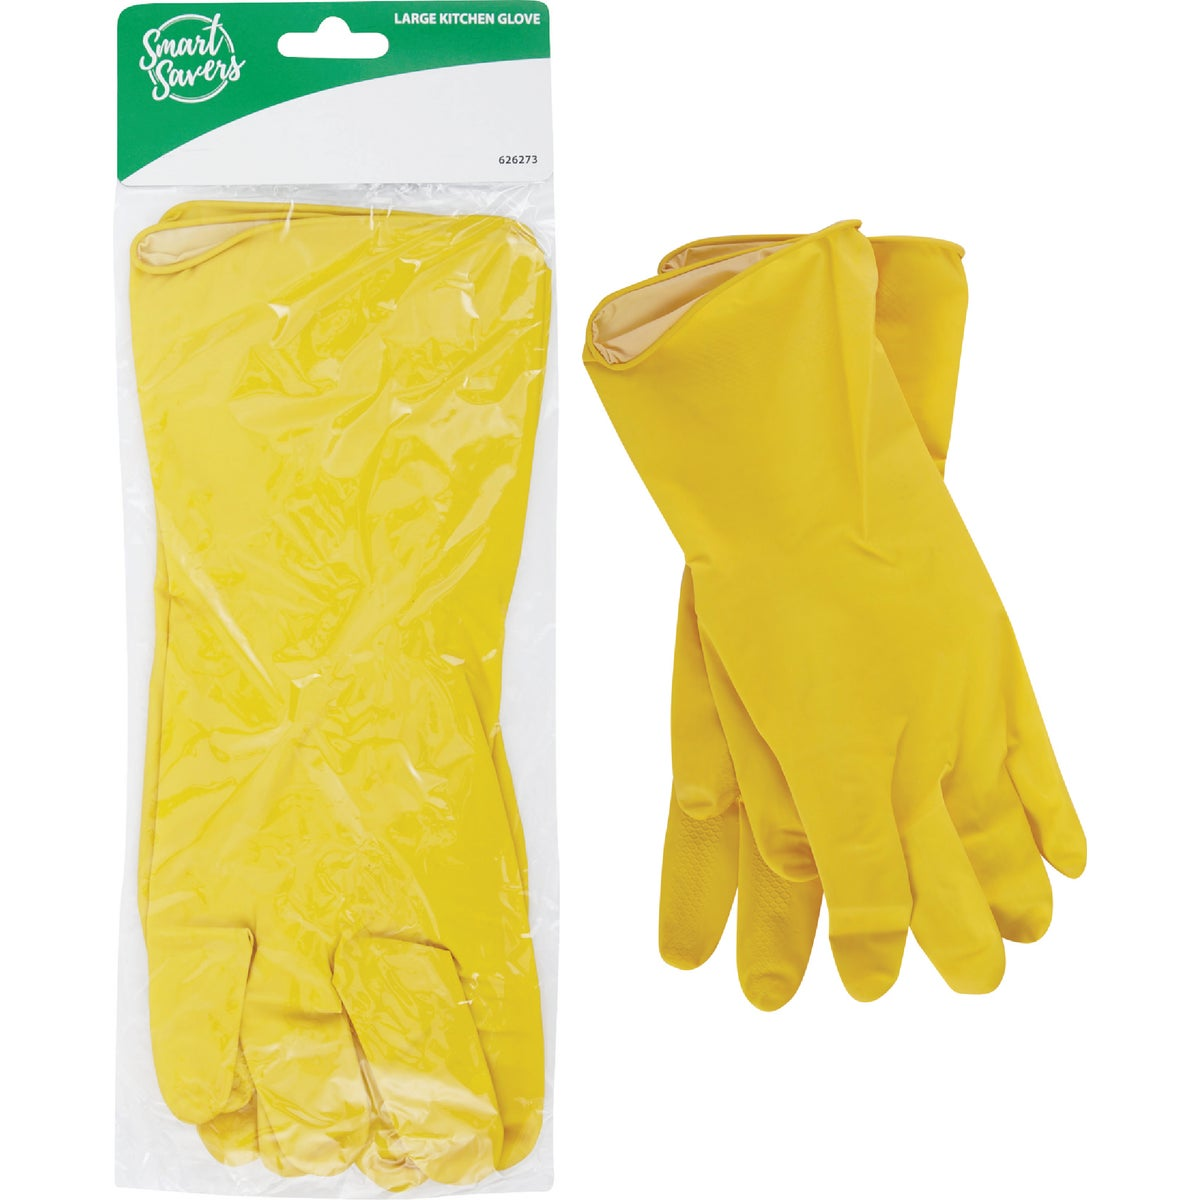 LARGE KITCHEN GLOVE - 820453 by Do it Best